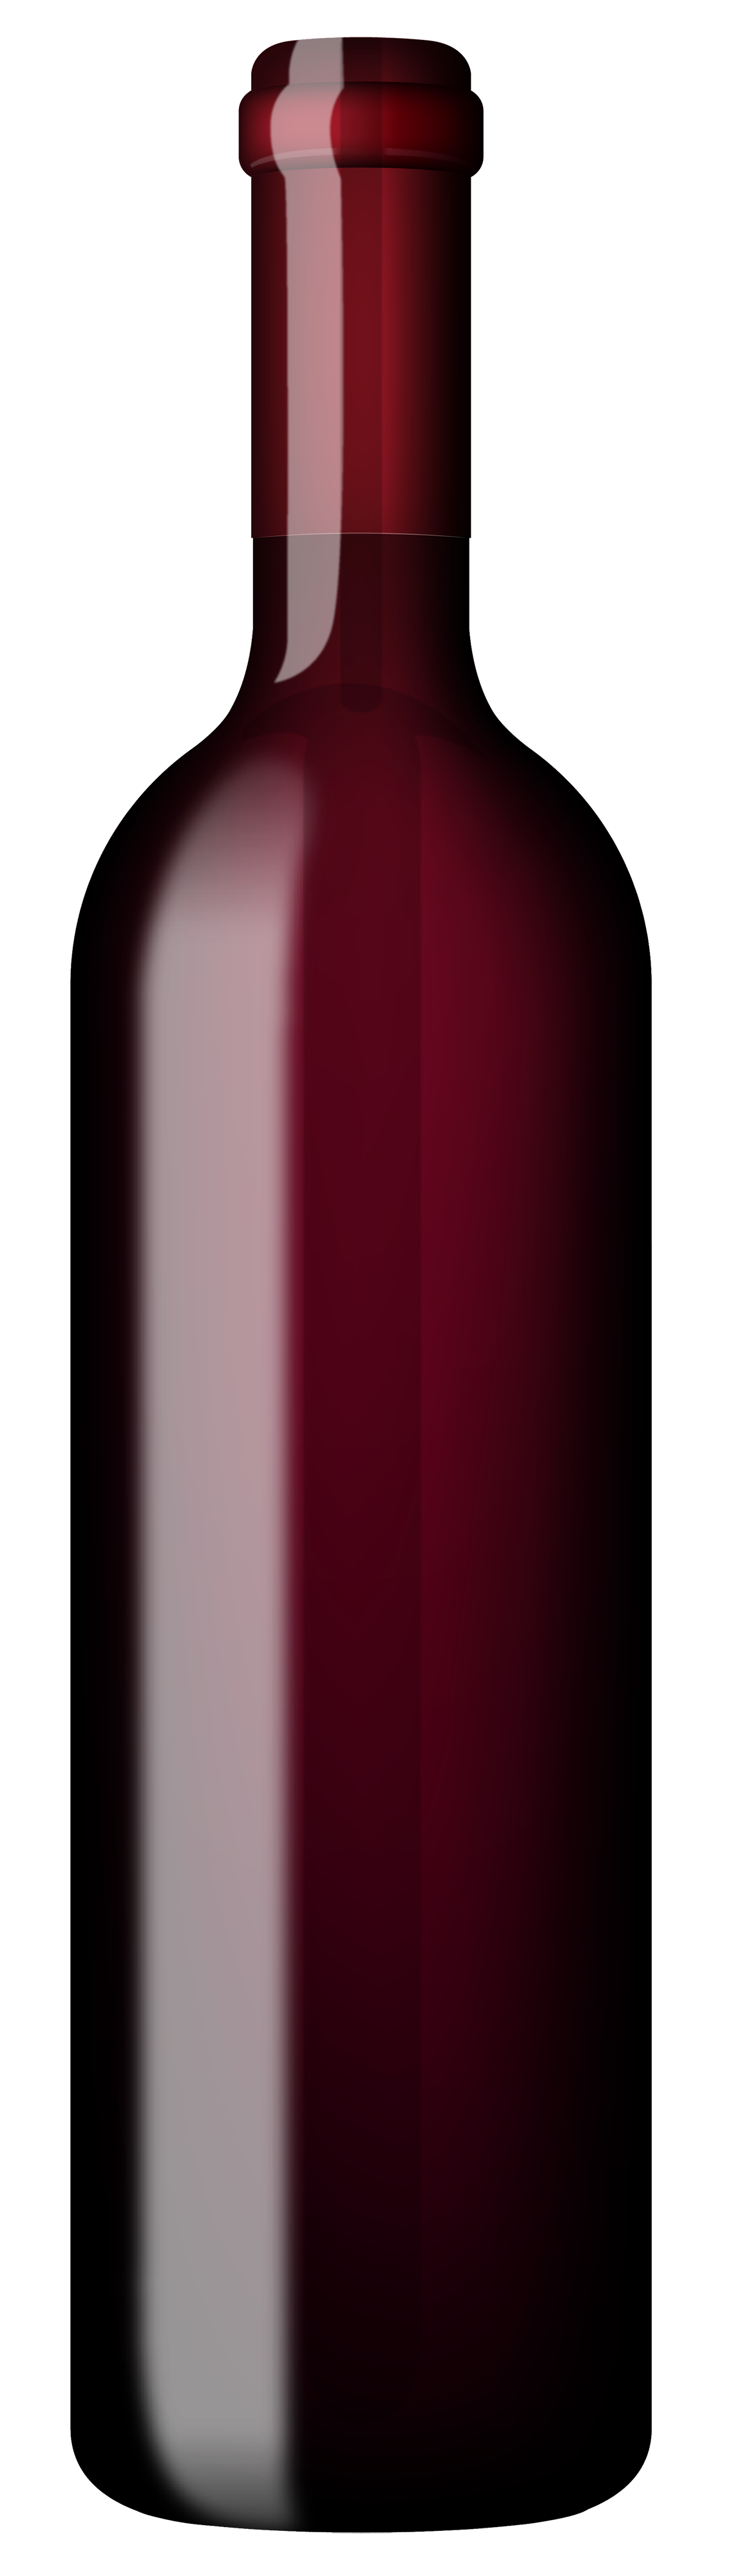 Bottle of wine png. Free clipart collection a